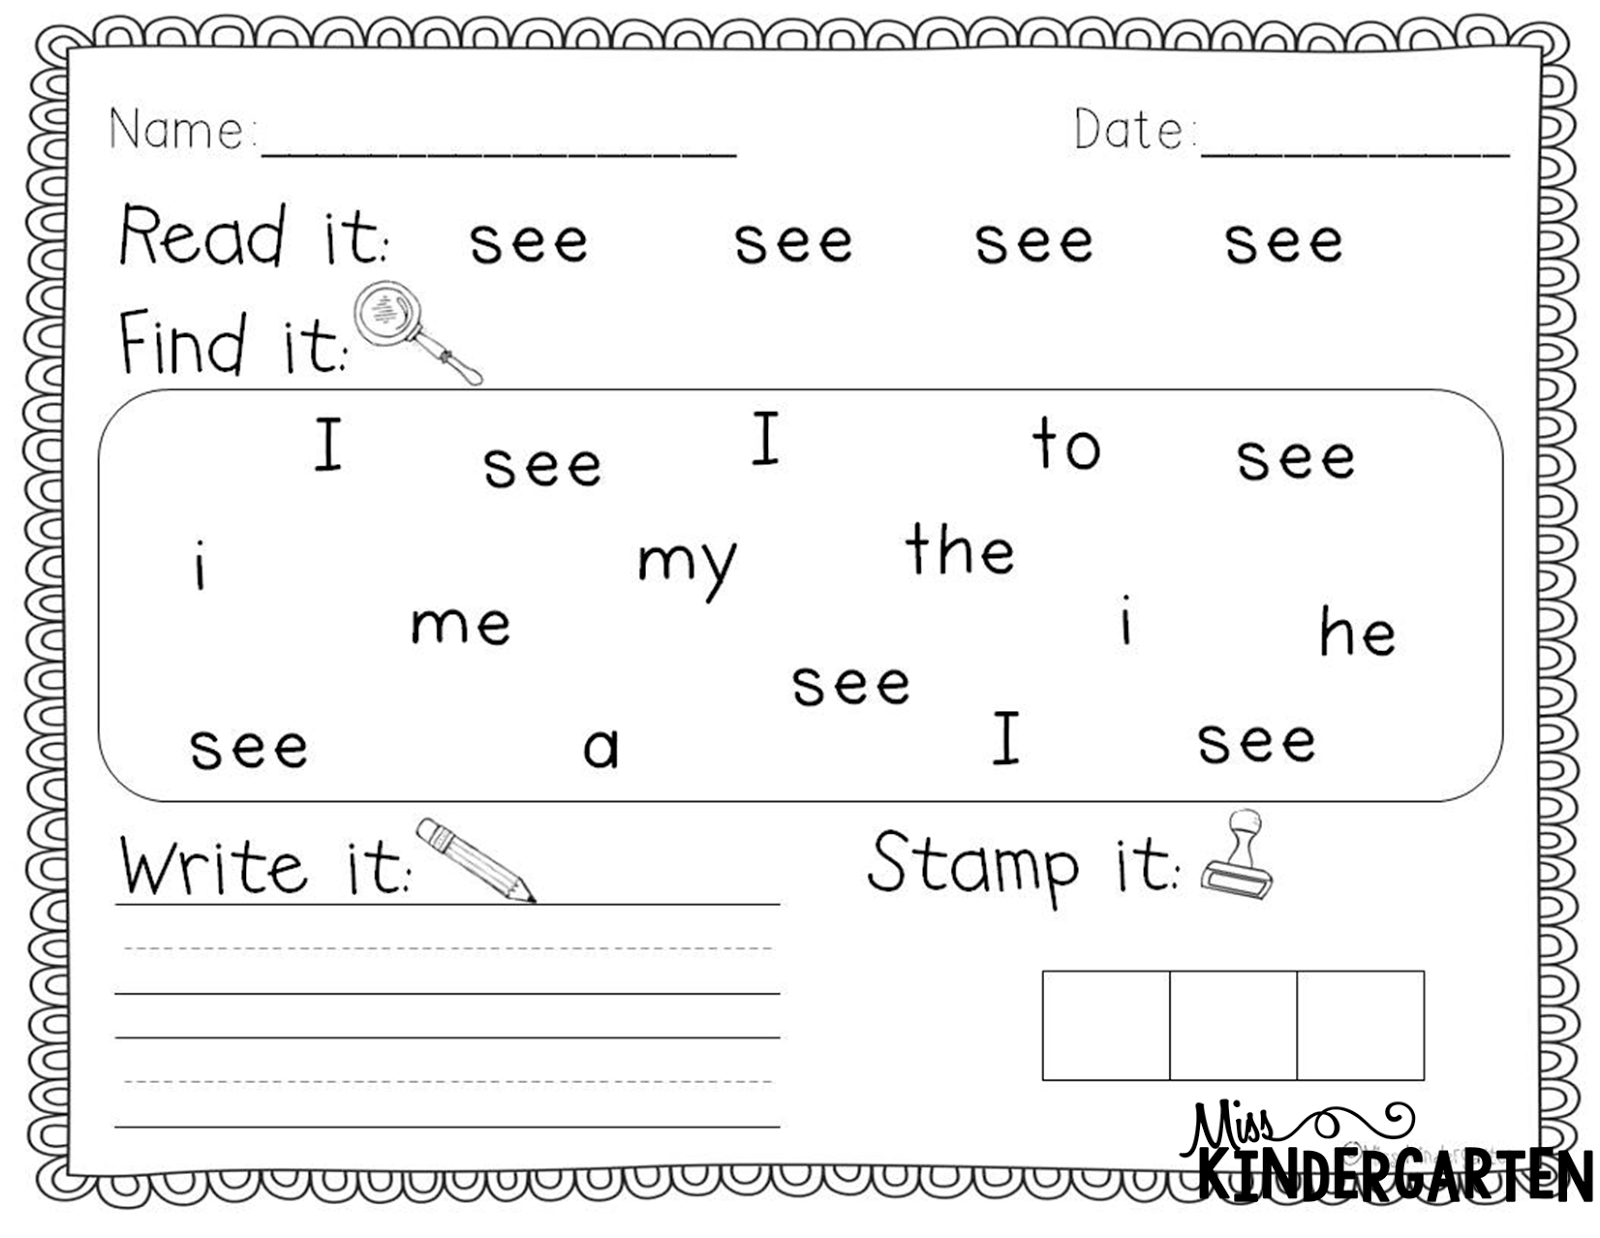 Printables Sight Words Worksheets sight word practice miss kindergarten httpwww teacherspayteachers comproductsight word